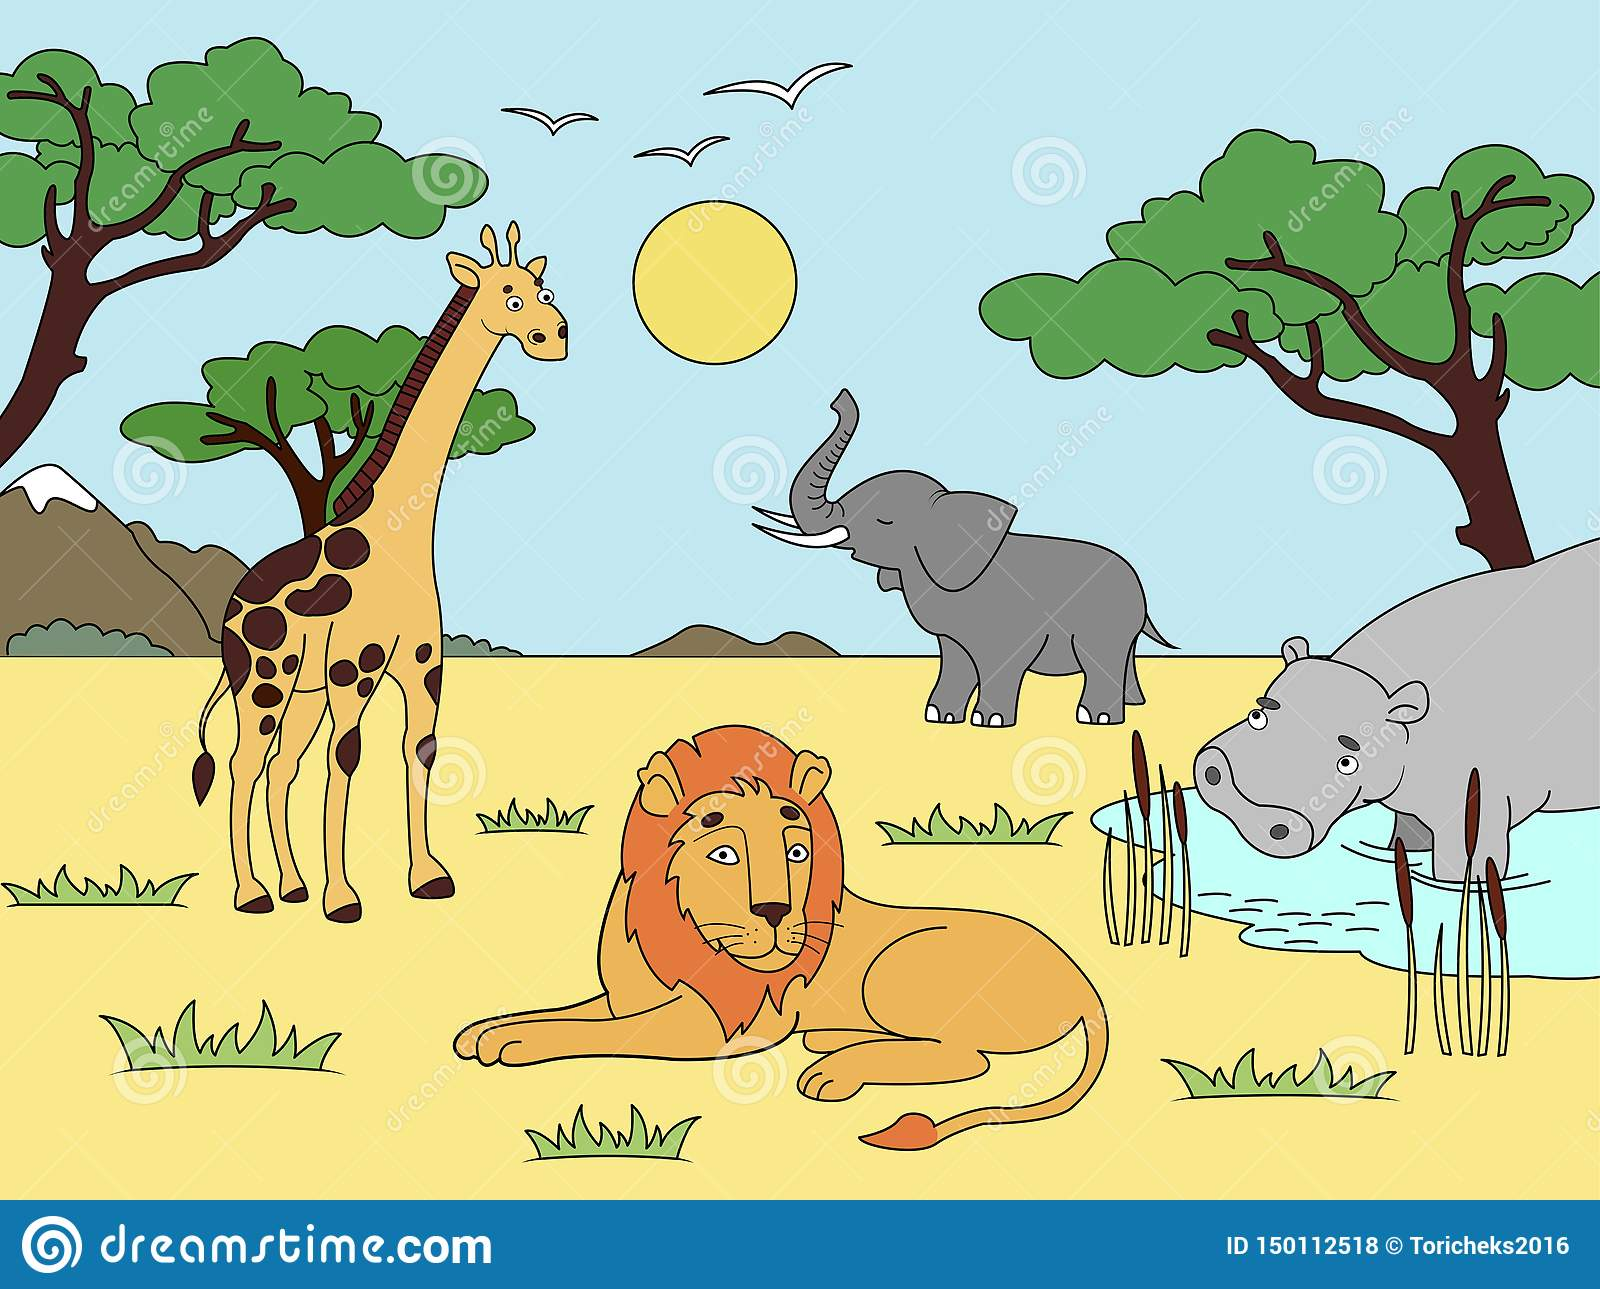 Children Drawing Zoo Stock Illustrations 16 212 Children Drawing Zoo Stock Illustrations Vectors Clipart Dreamstime